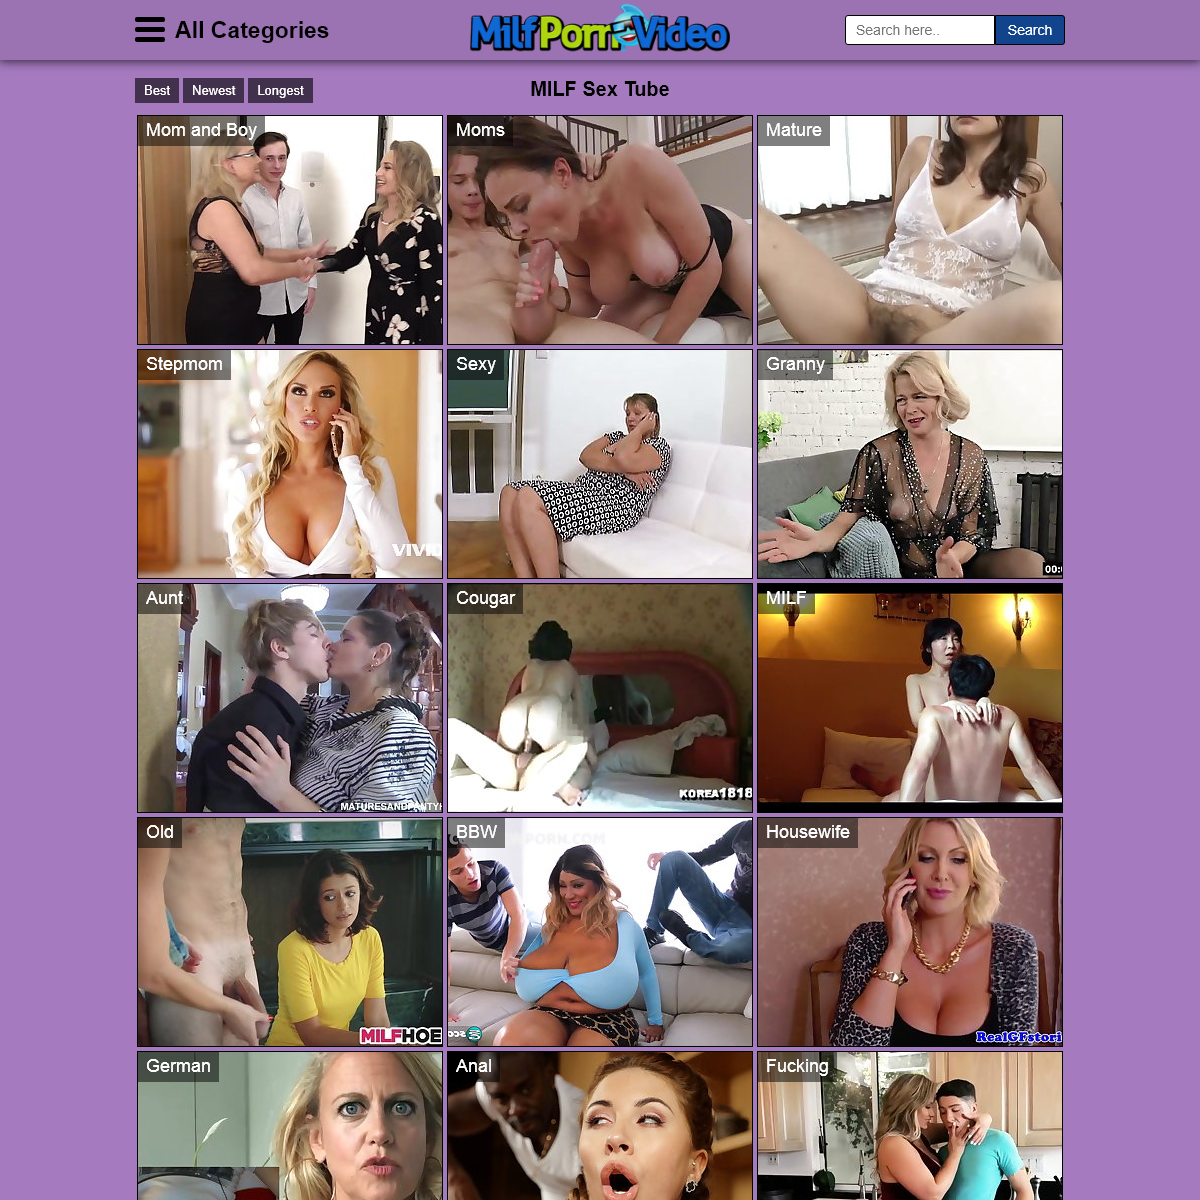 A complete backup of www.www.milfpornvideo.com